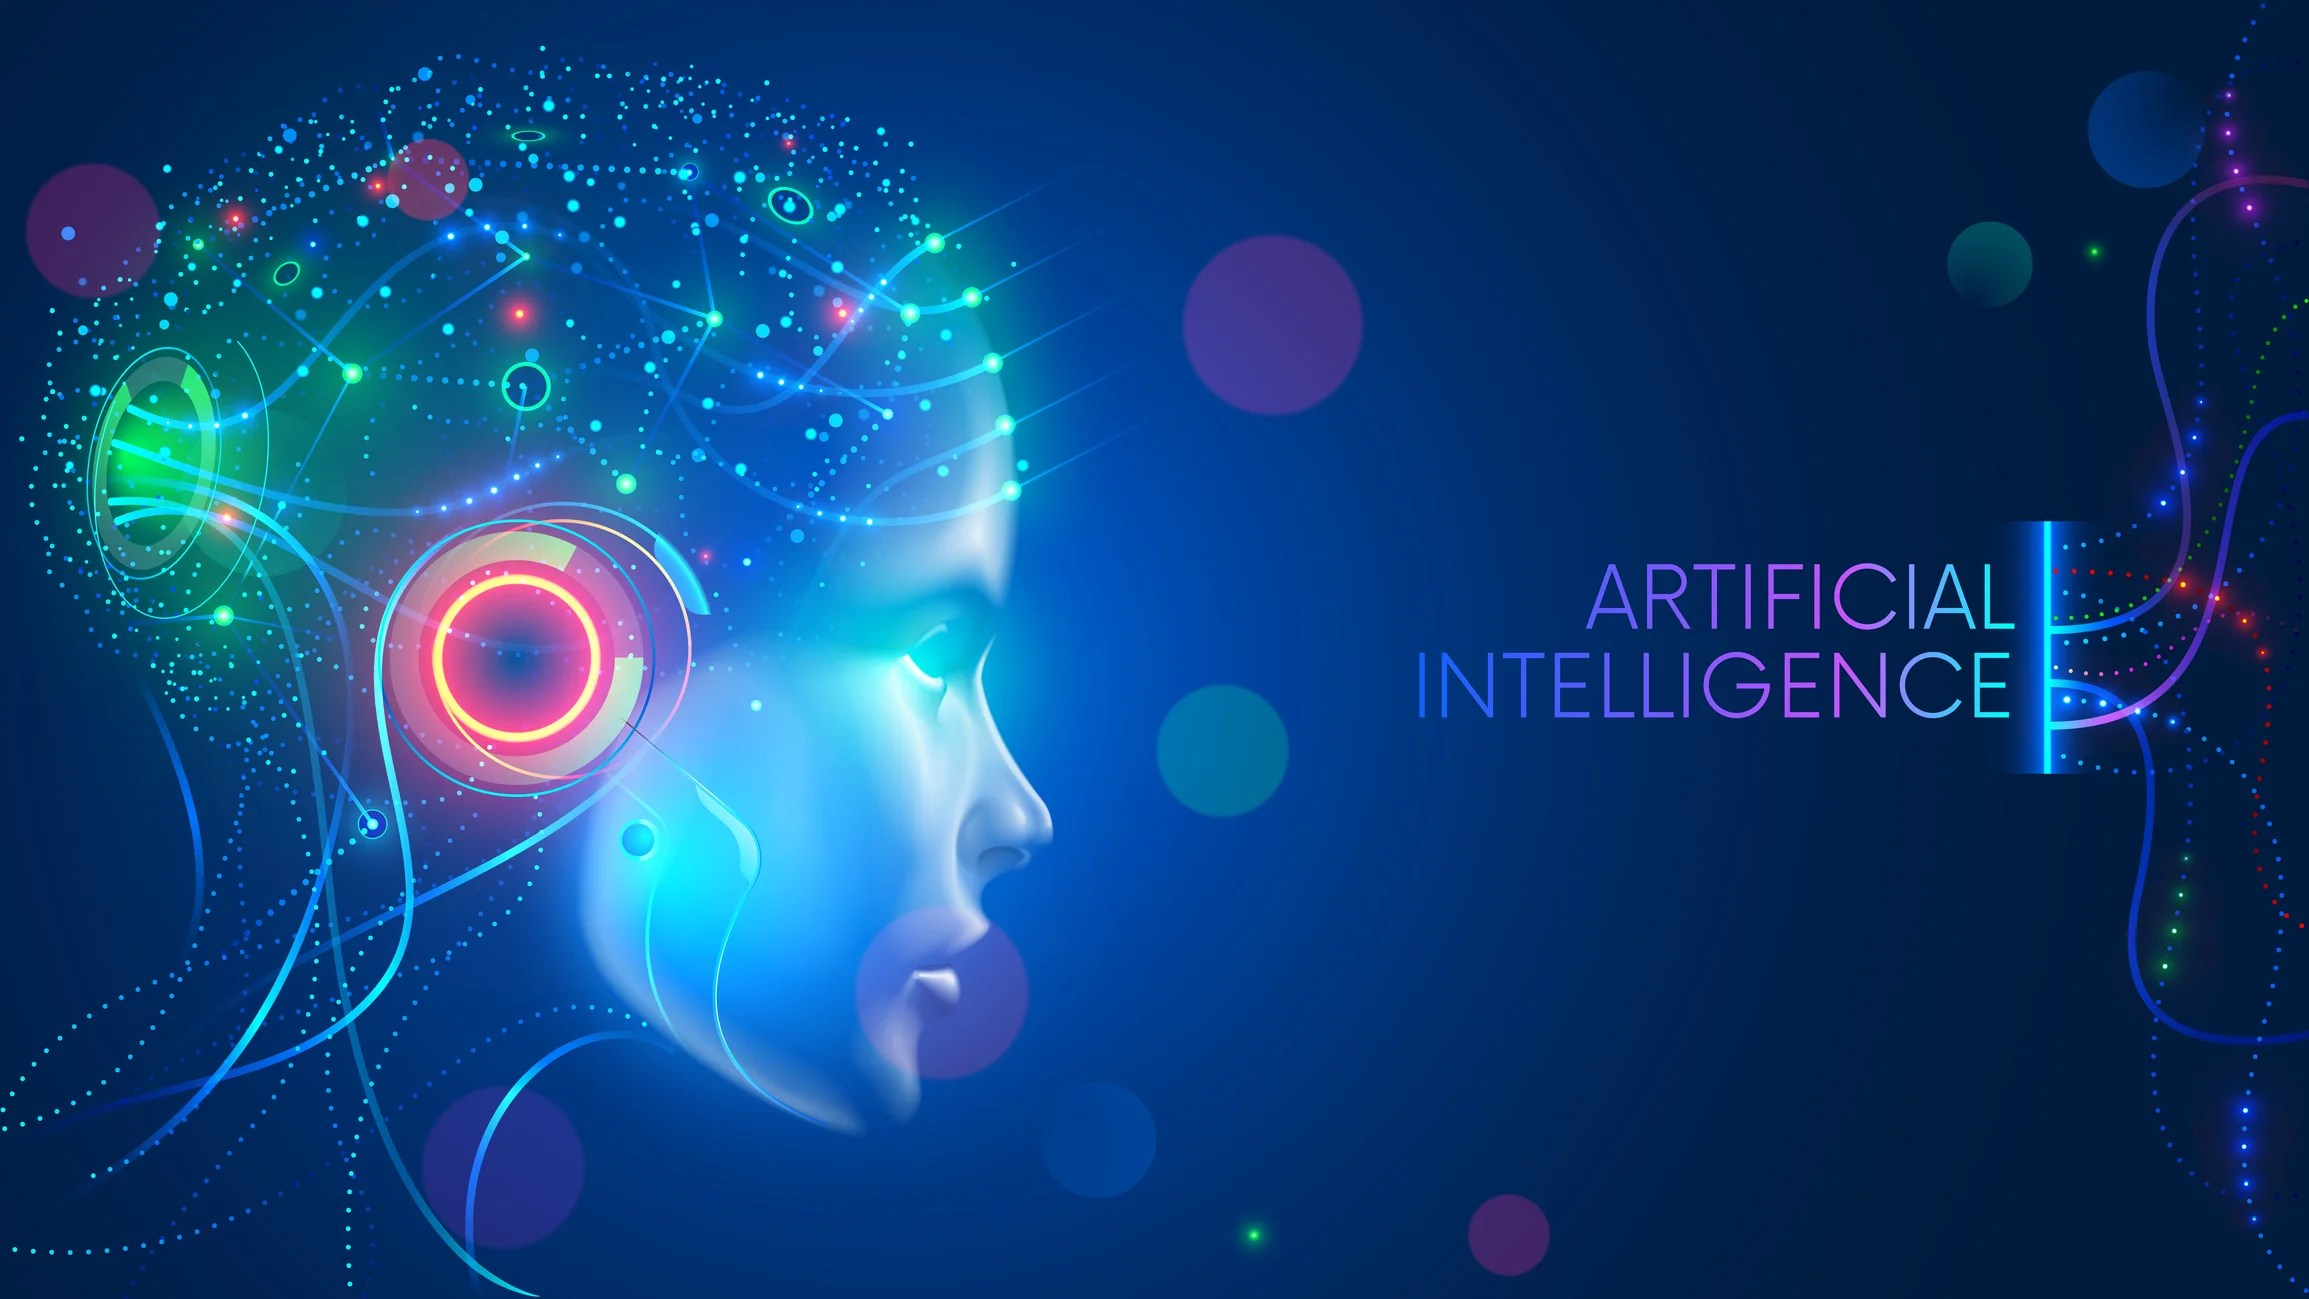 3 Top Artificial Intelligence Stocks To Watch In March